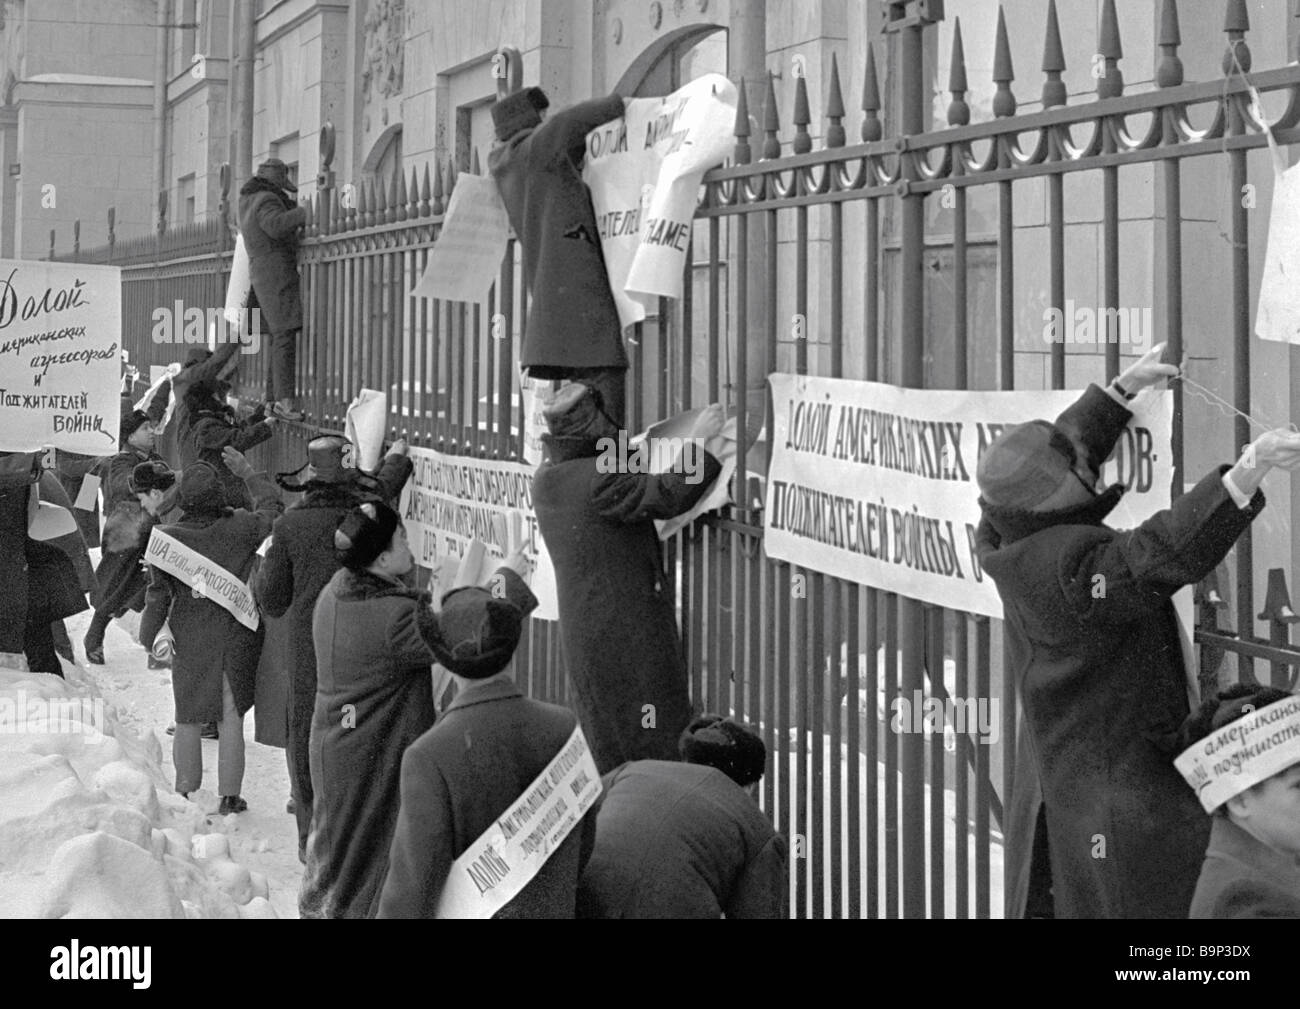 Marchers hanging out placards outside the American embassy to protest American air raids on populated localities - Stock Image